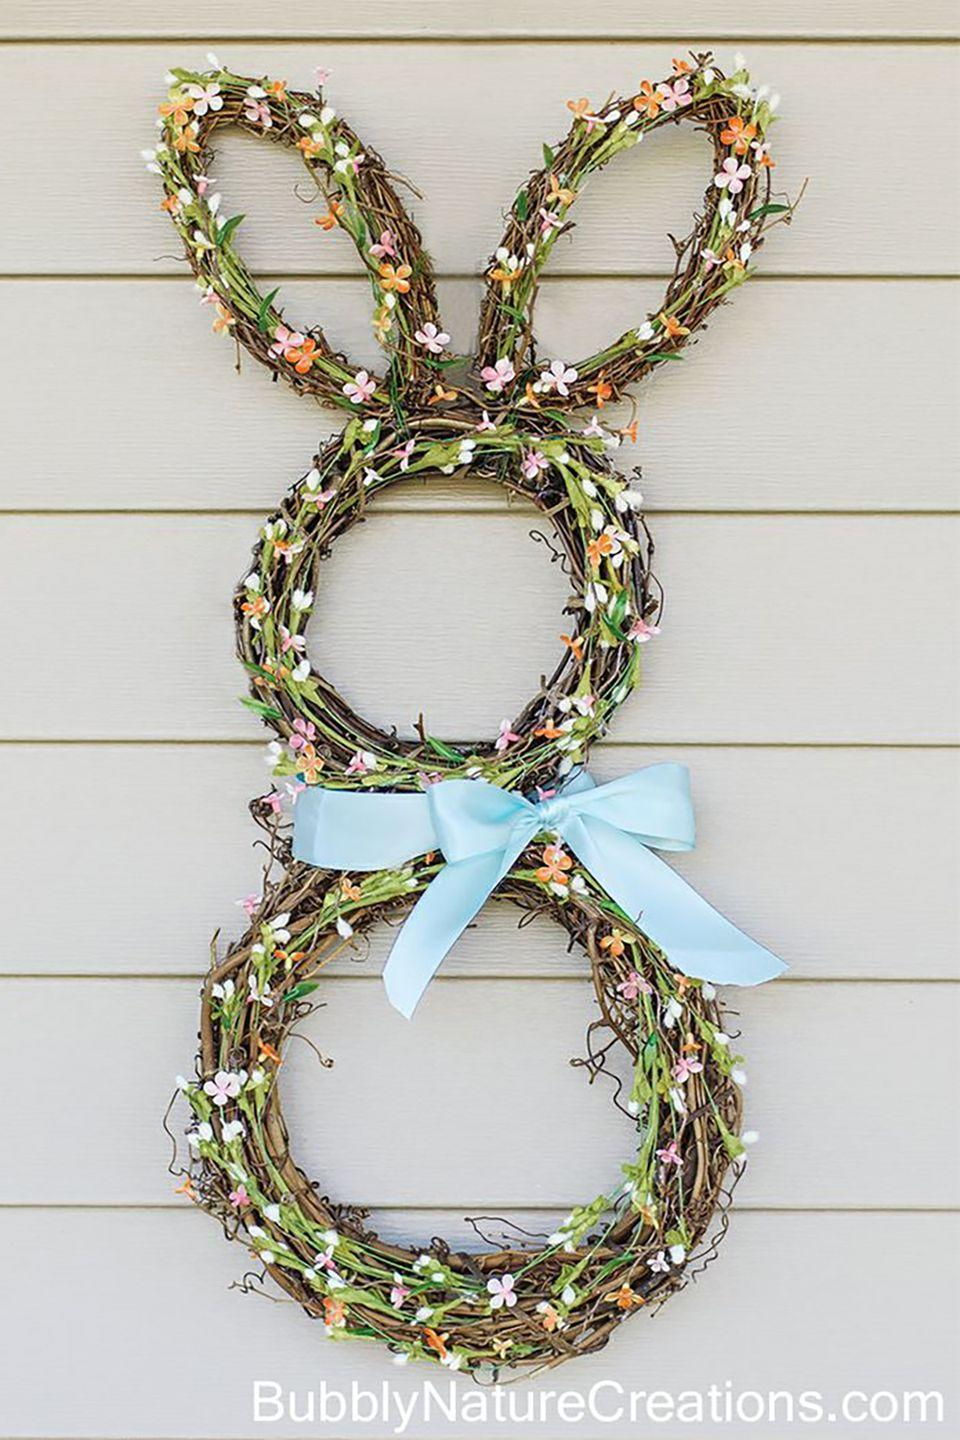 """<p>How adorable is this bunny wreath? Grab extra supplies, because all of your friends will want one too!</p><p><strong>Get the tutorial at <a href=""""http://sprinklesomefun.com/2013/03/bunny-wreath.html"""" rel=""""nofollow noopener"""" target=""""_blank"""" data-ylk=""""slk:Sprinkle Some Fun"""" class=""""link rapid-noclick-resp"""">Sprinkle Some Fun</a>. </strong></p><p><strong><a class=""""link rapid-noclick-resp"""" href=""""https://www.amazon.com/Bulk-Buy-Darice-Grapevine-Wreath/dp/B0033M0HG4?tag=syn-yahoo-20&ascsubtag=%5Bartid%7C10050.g.4088%5Bsrc%7Cyahoo-us"""" rel=""""nofollow noopener"""" target=""""_blank"""" data-ylk=""""slk:SHOP GRAPEVINE WREATHS"""">SHOP GRAPEVINE WREATHS</a><br></strong></p>"""